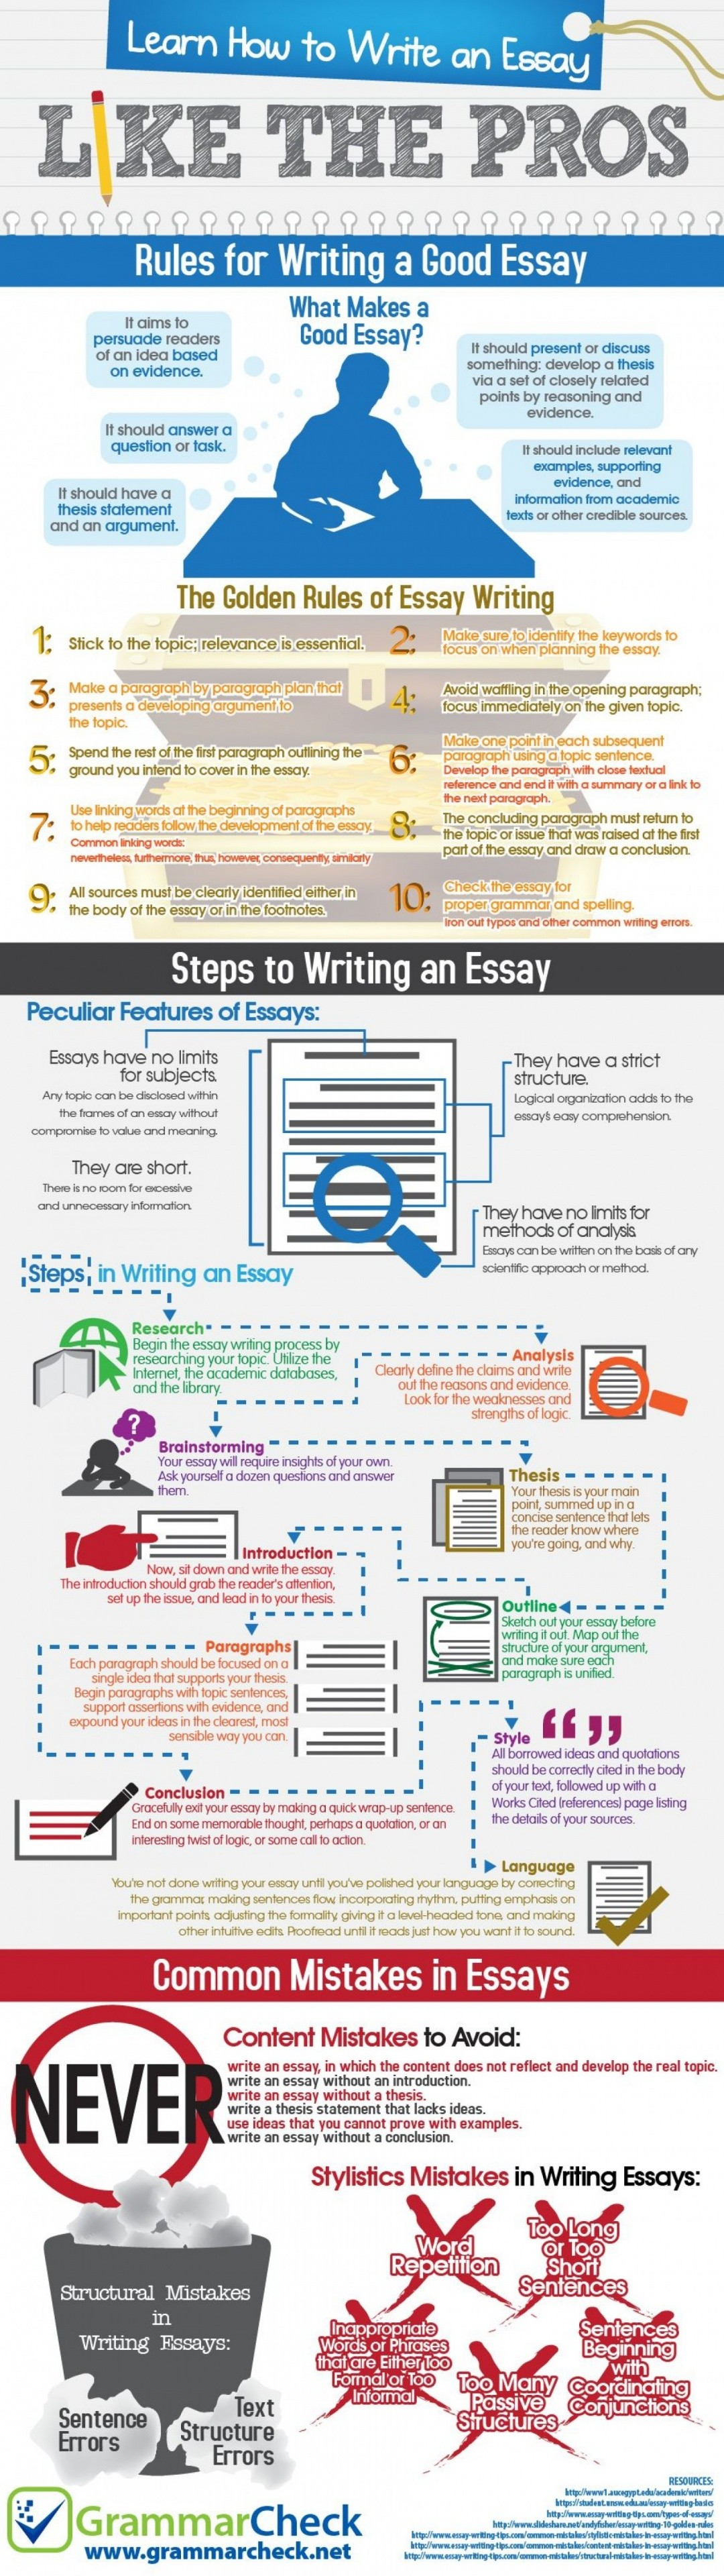 How To Write An Essay Like The Pros